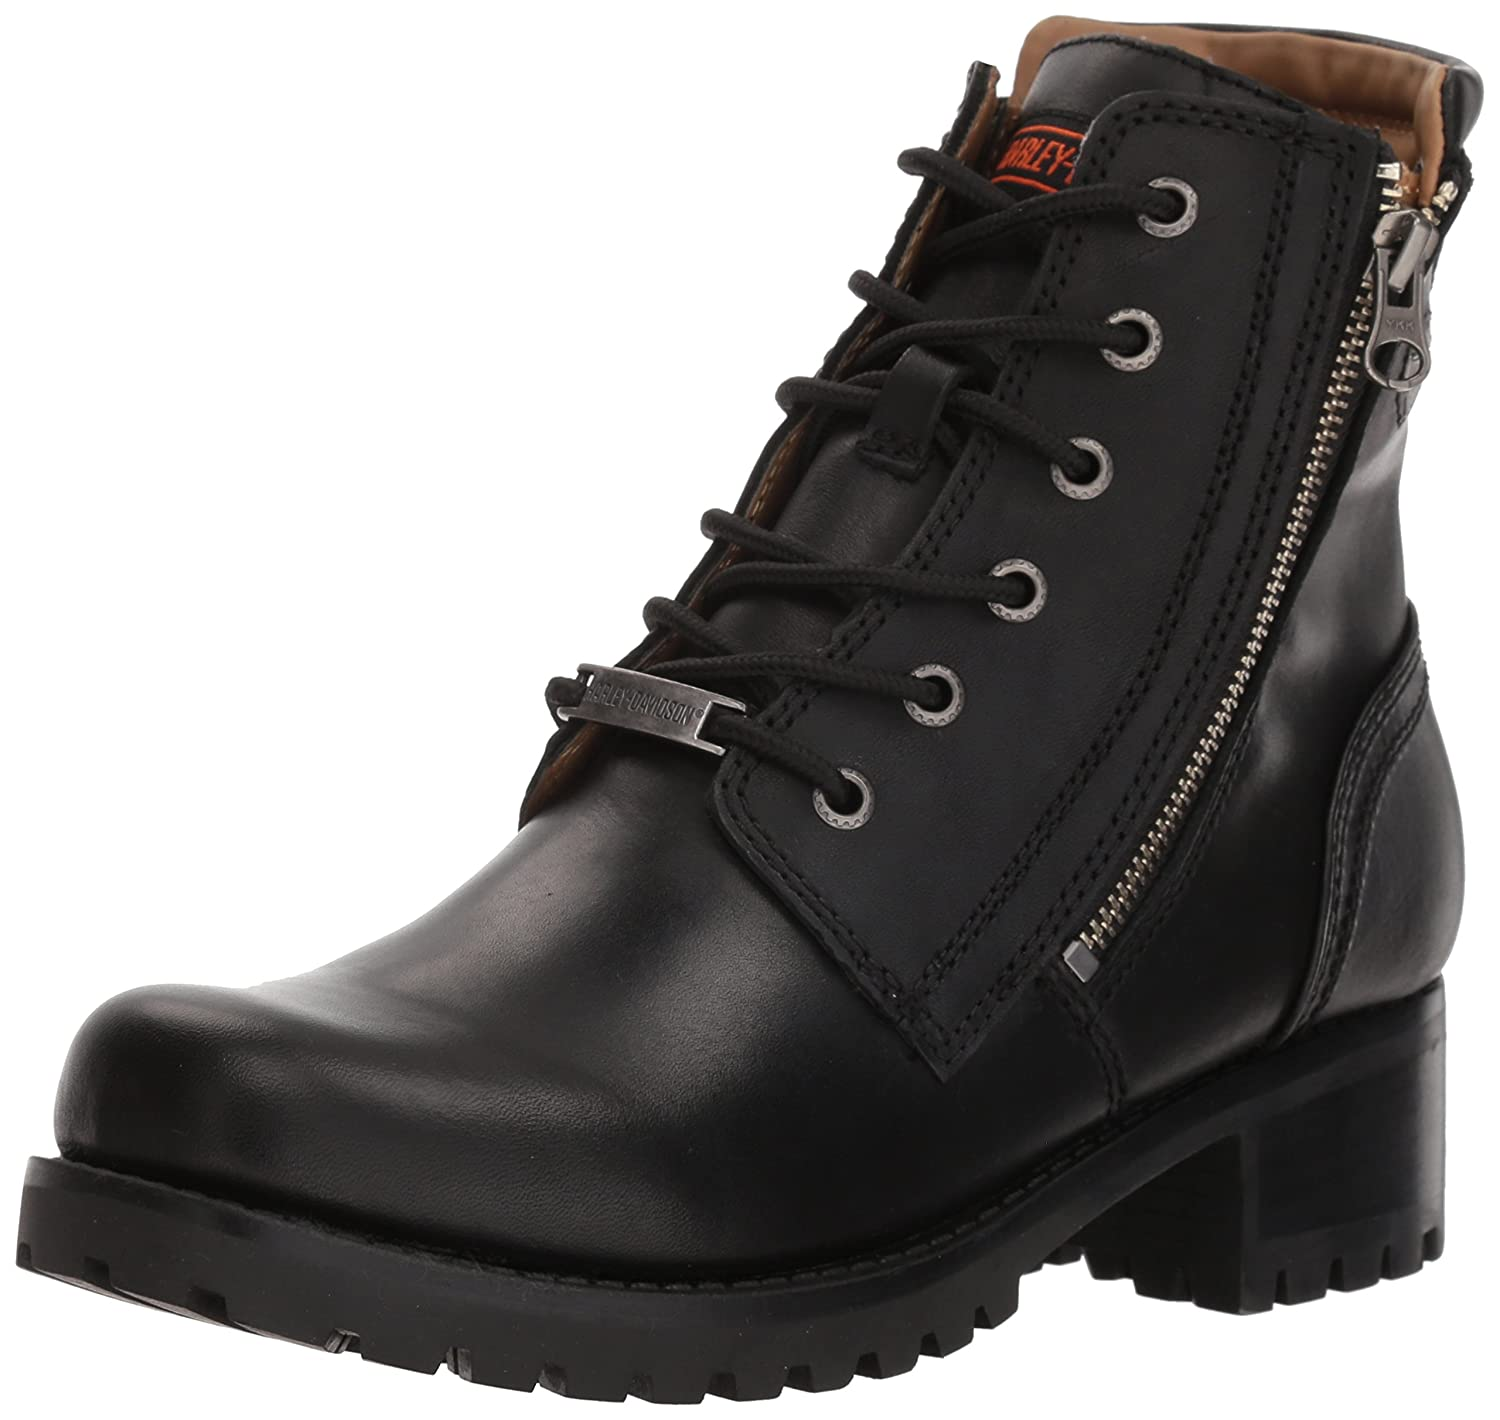 Harley-Davidson Women's Asher Motorcycle Boot B074T9Y3LQ 5.5 B(M) US|Black